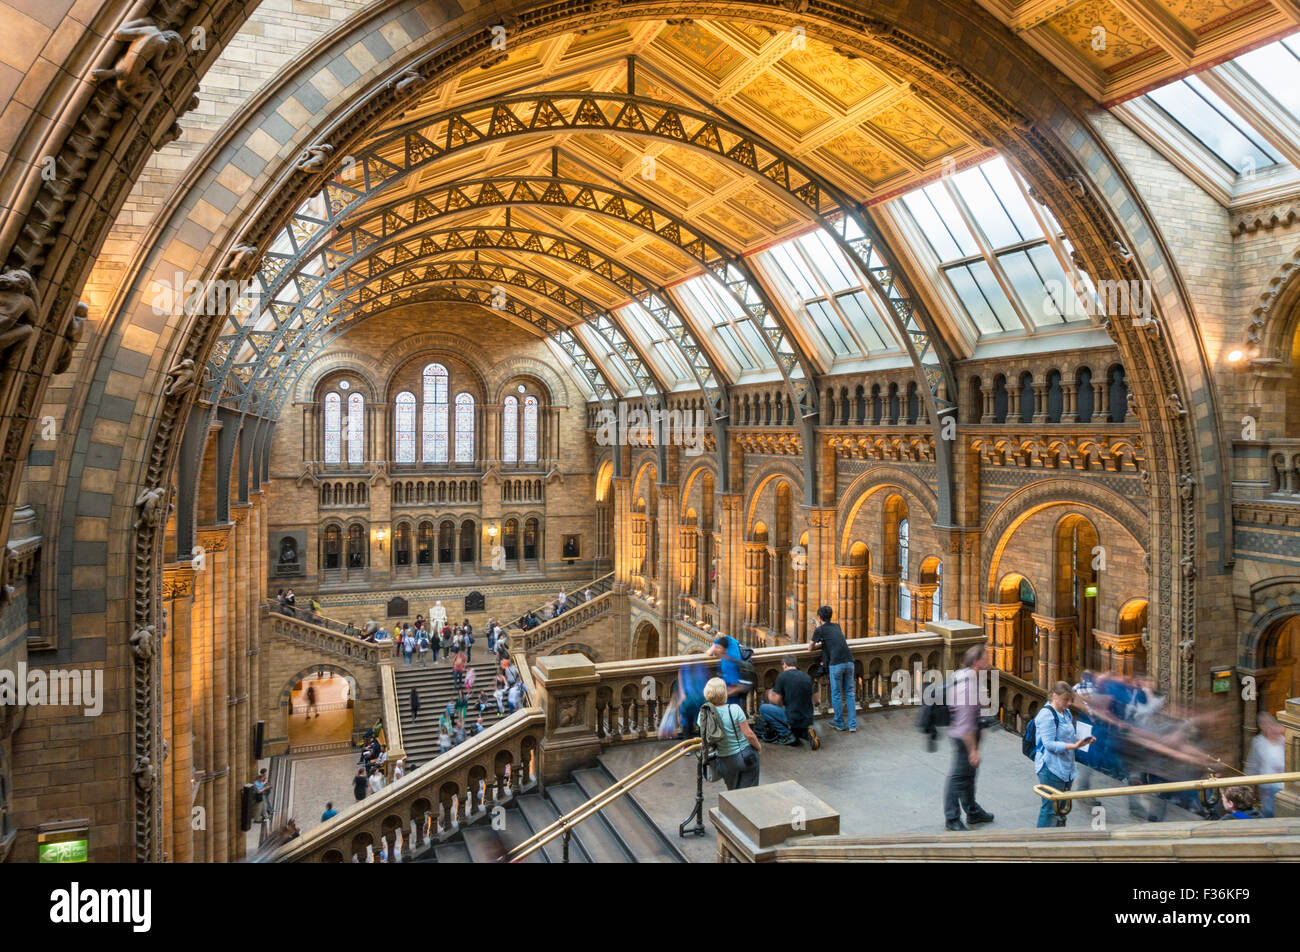 Where Is The Natural History Museum Dublin